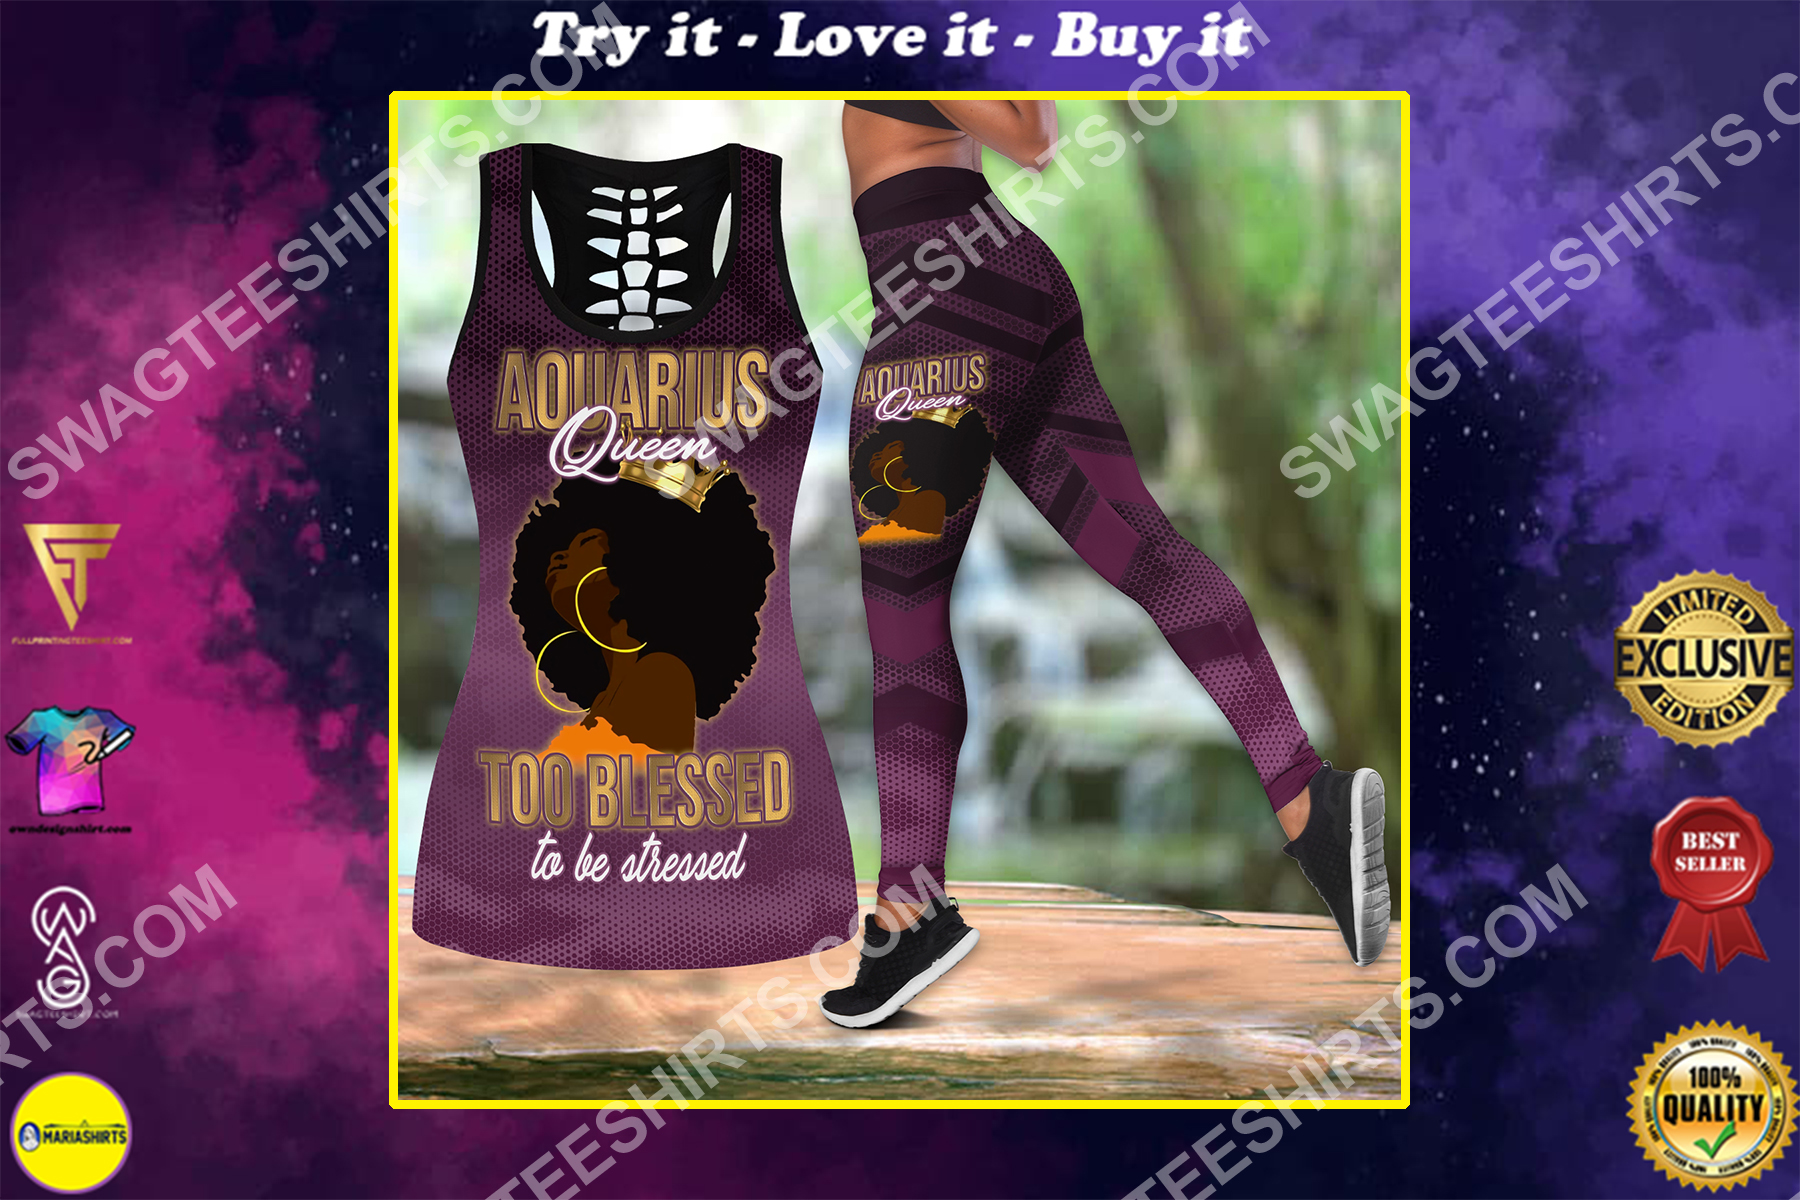 aquarius queen too blessed to be stressed birthday gift set sports outfit